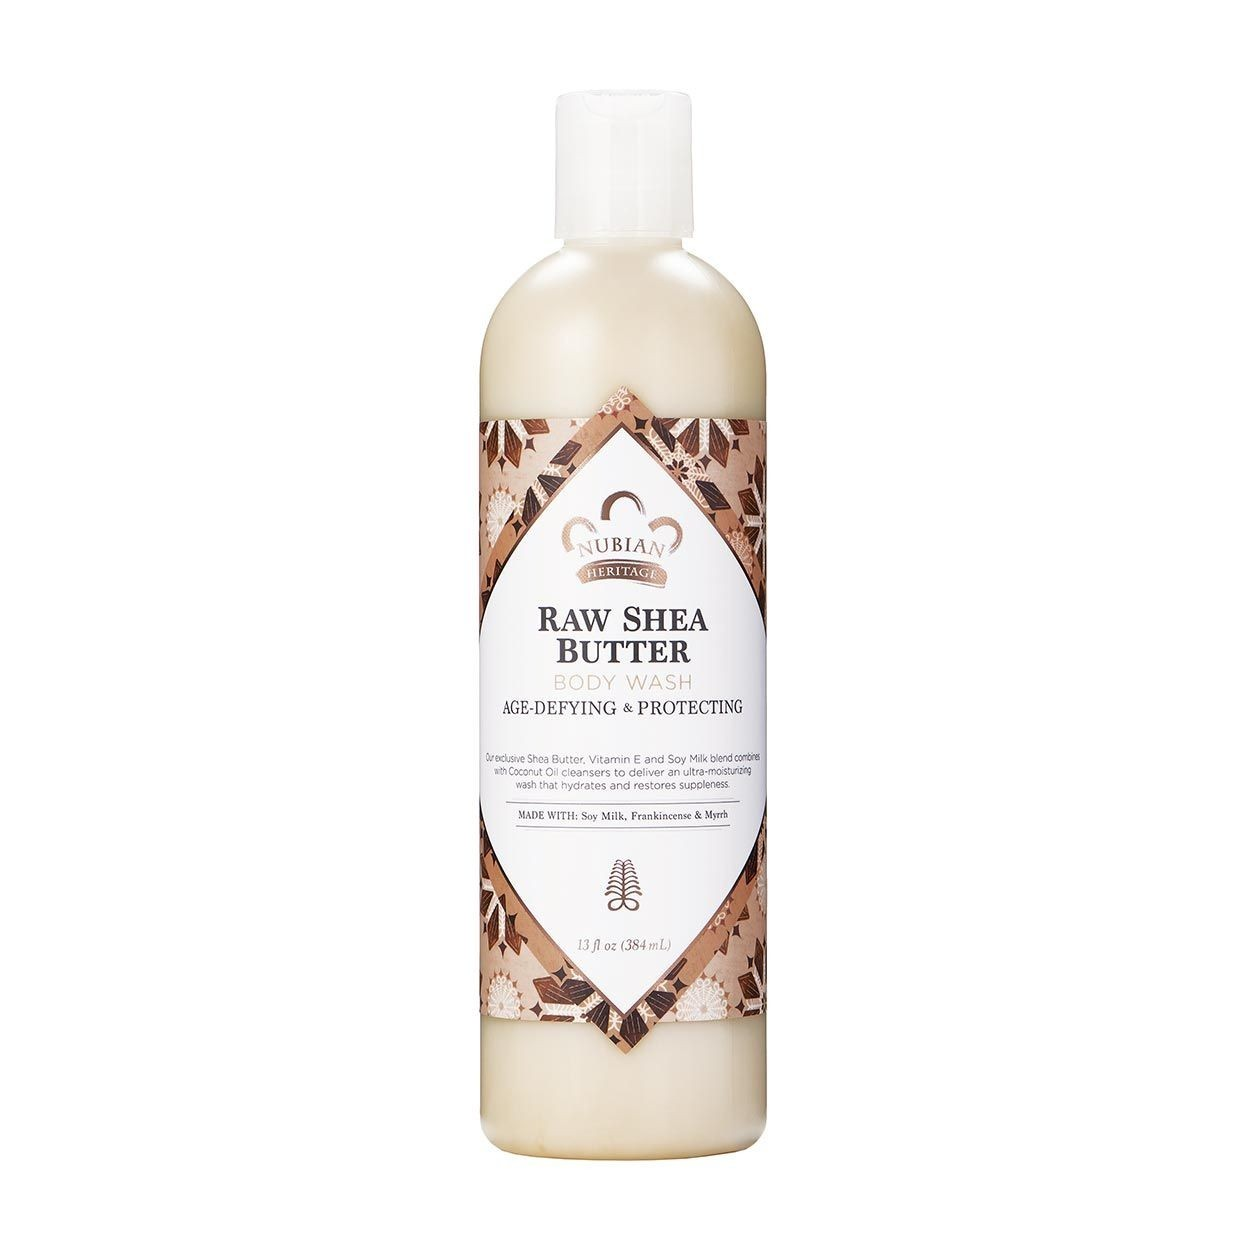 Body Wash, Bath Bombs & More by Nubian Heritage & Sheamoisture, 11,/1,072 Cases, Ext. Retail $149,002, Edwardsville, IL